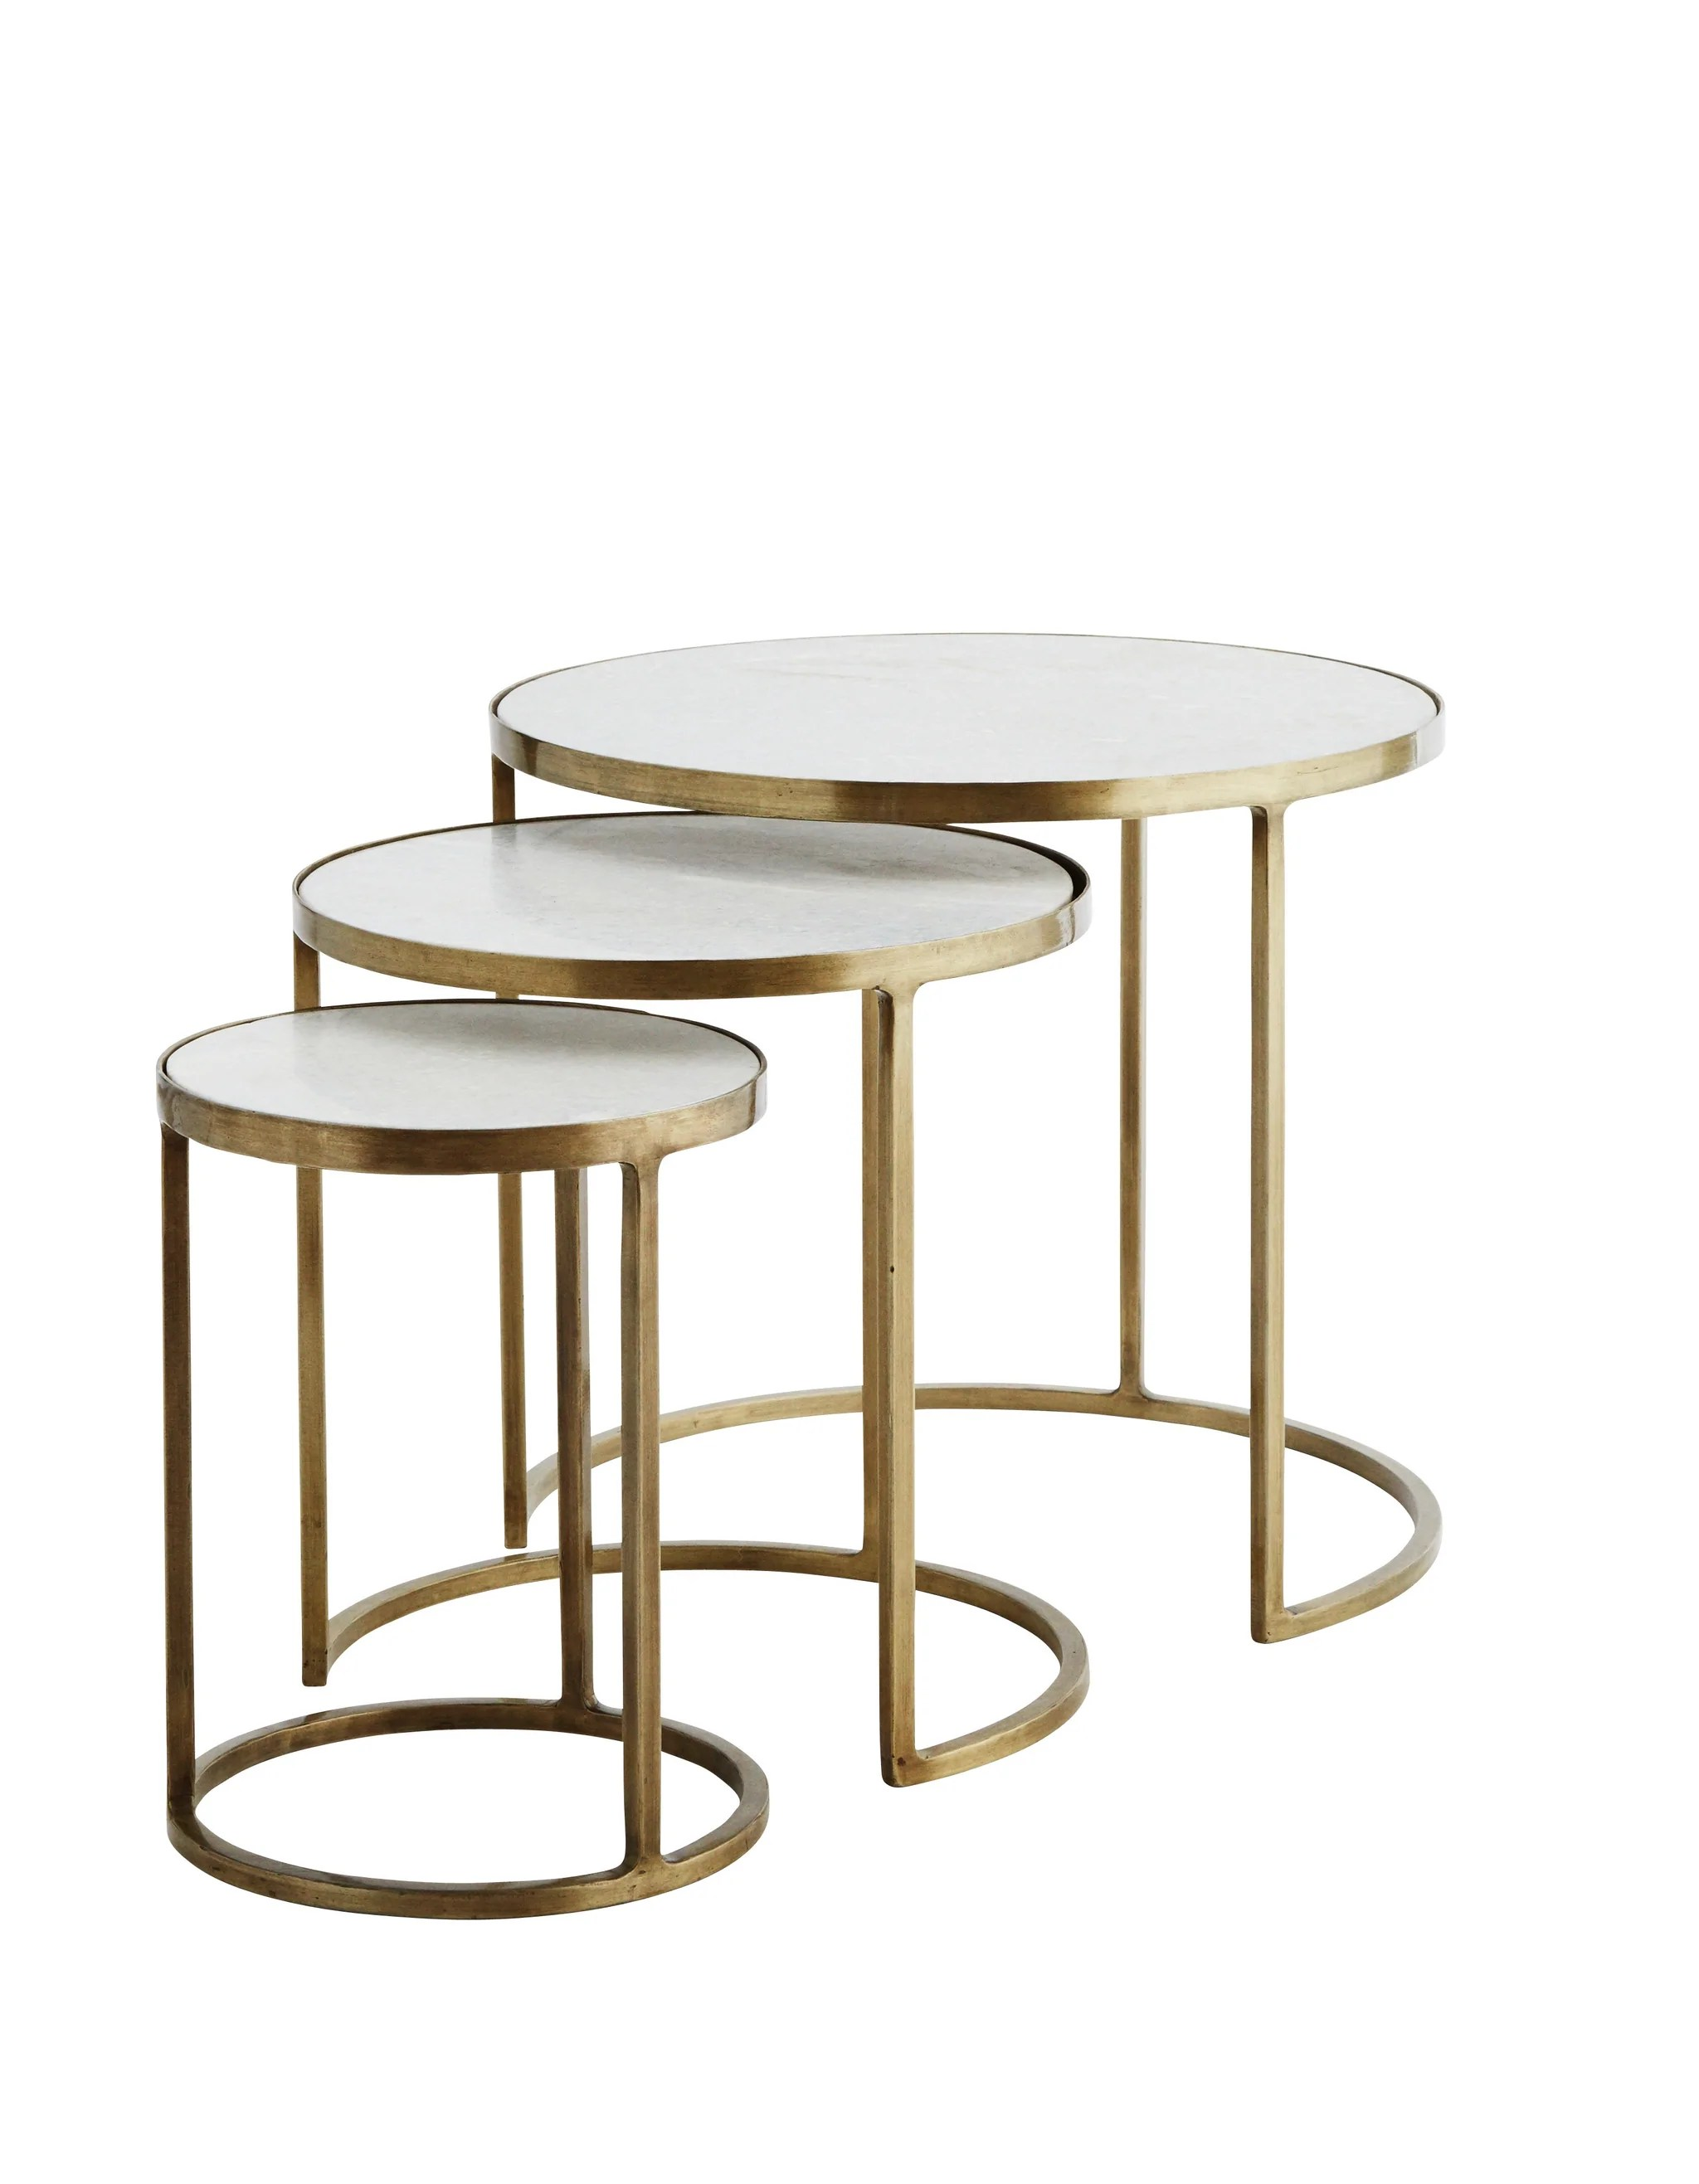 white marble and brass nesting tables pre order april